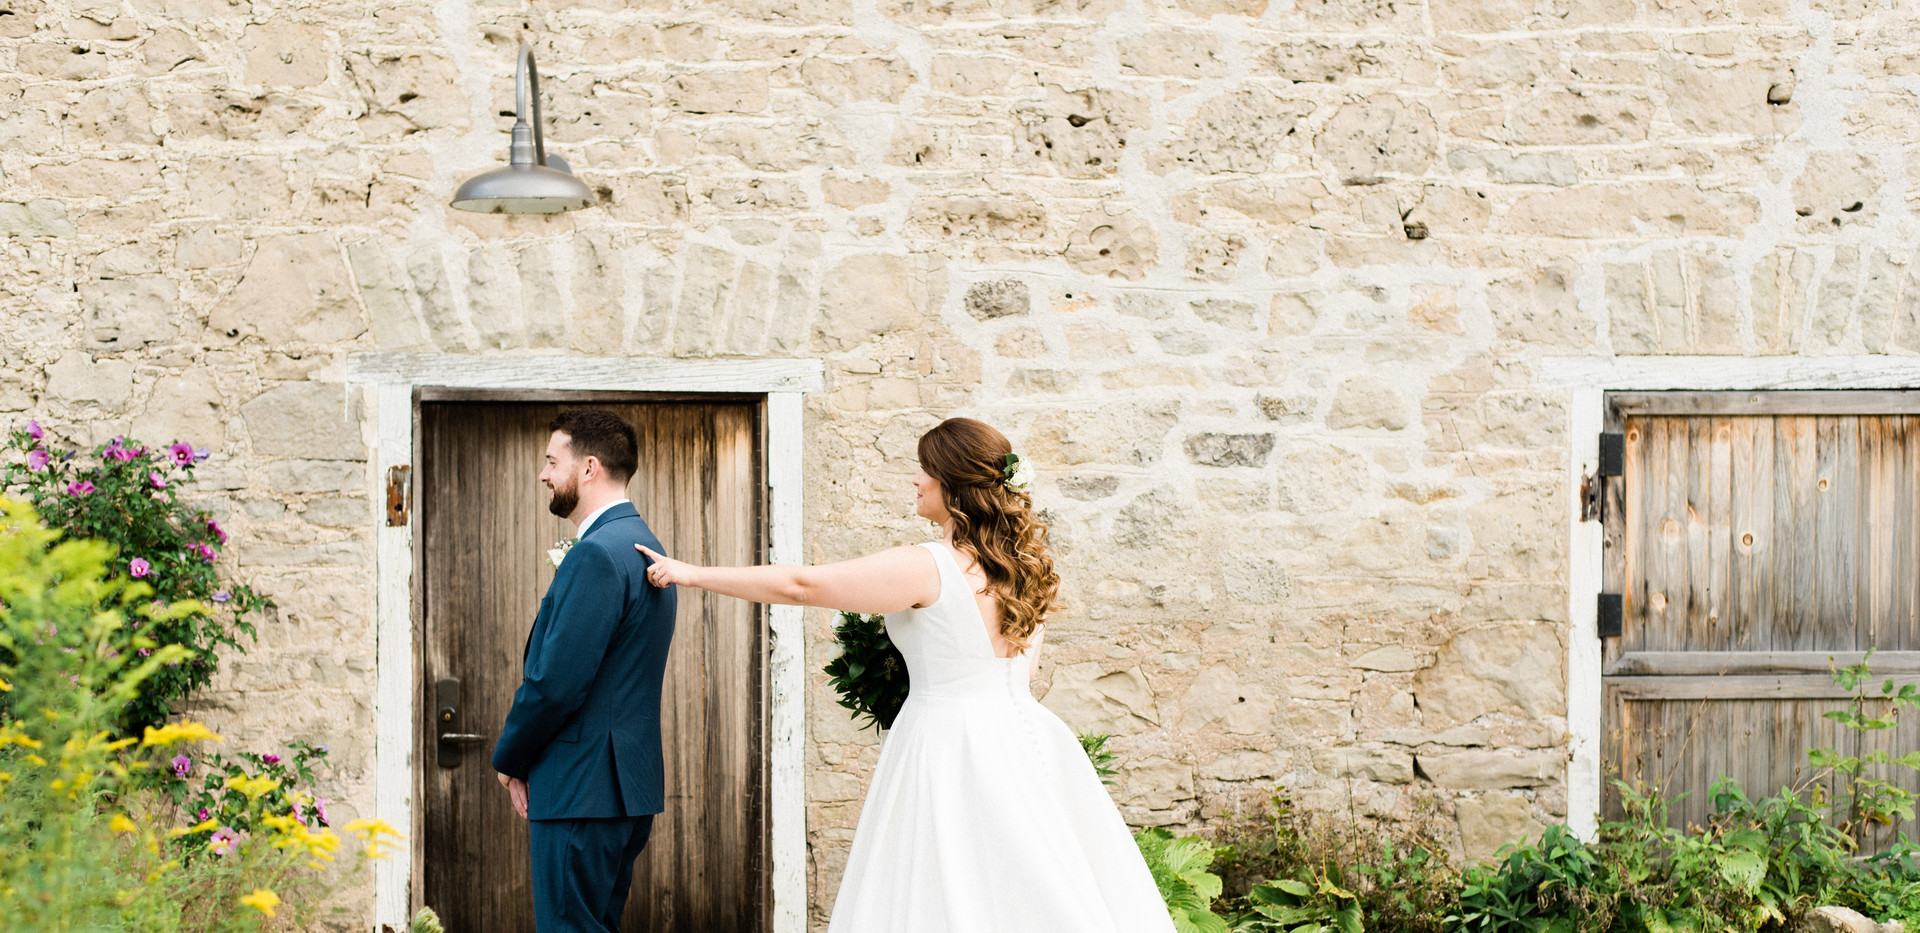 the moment bride taps groom on the shoulder for their first look against white stone barn